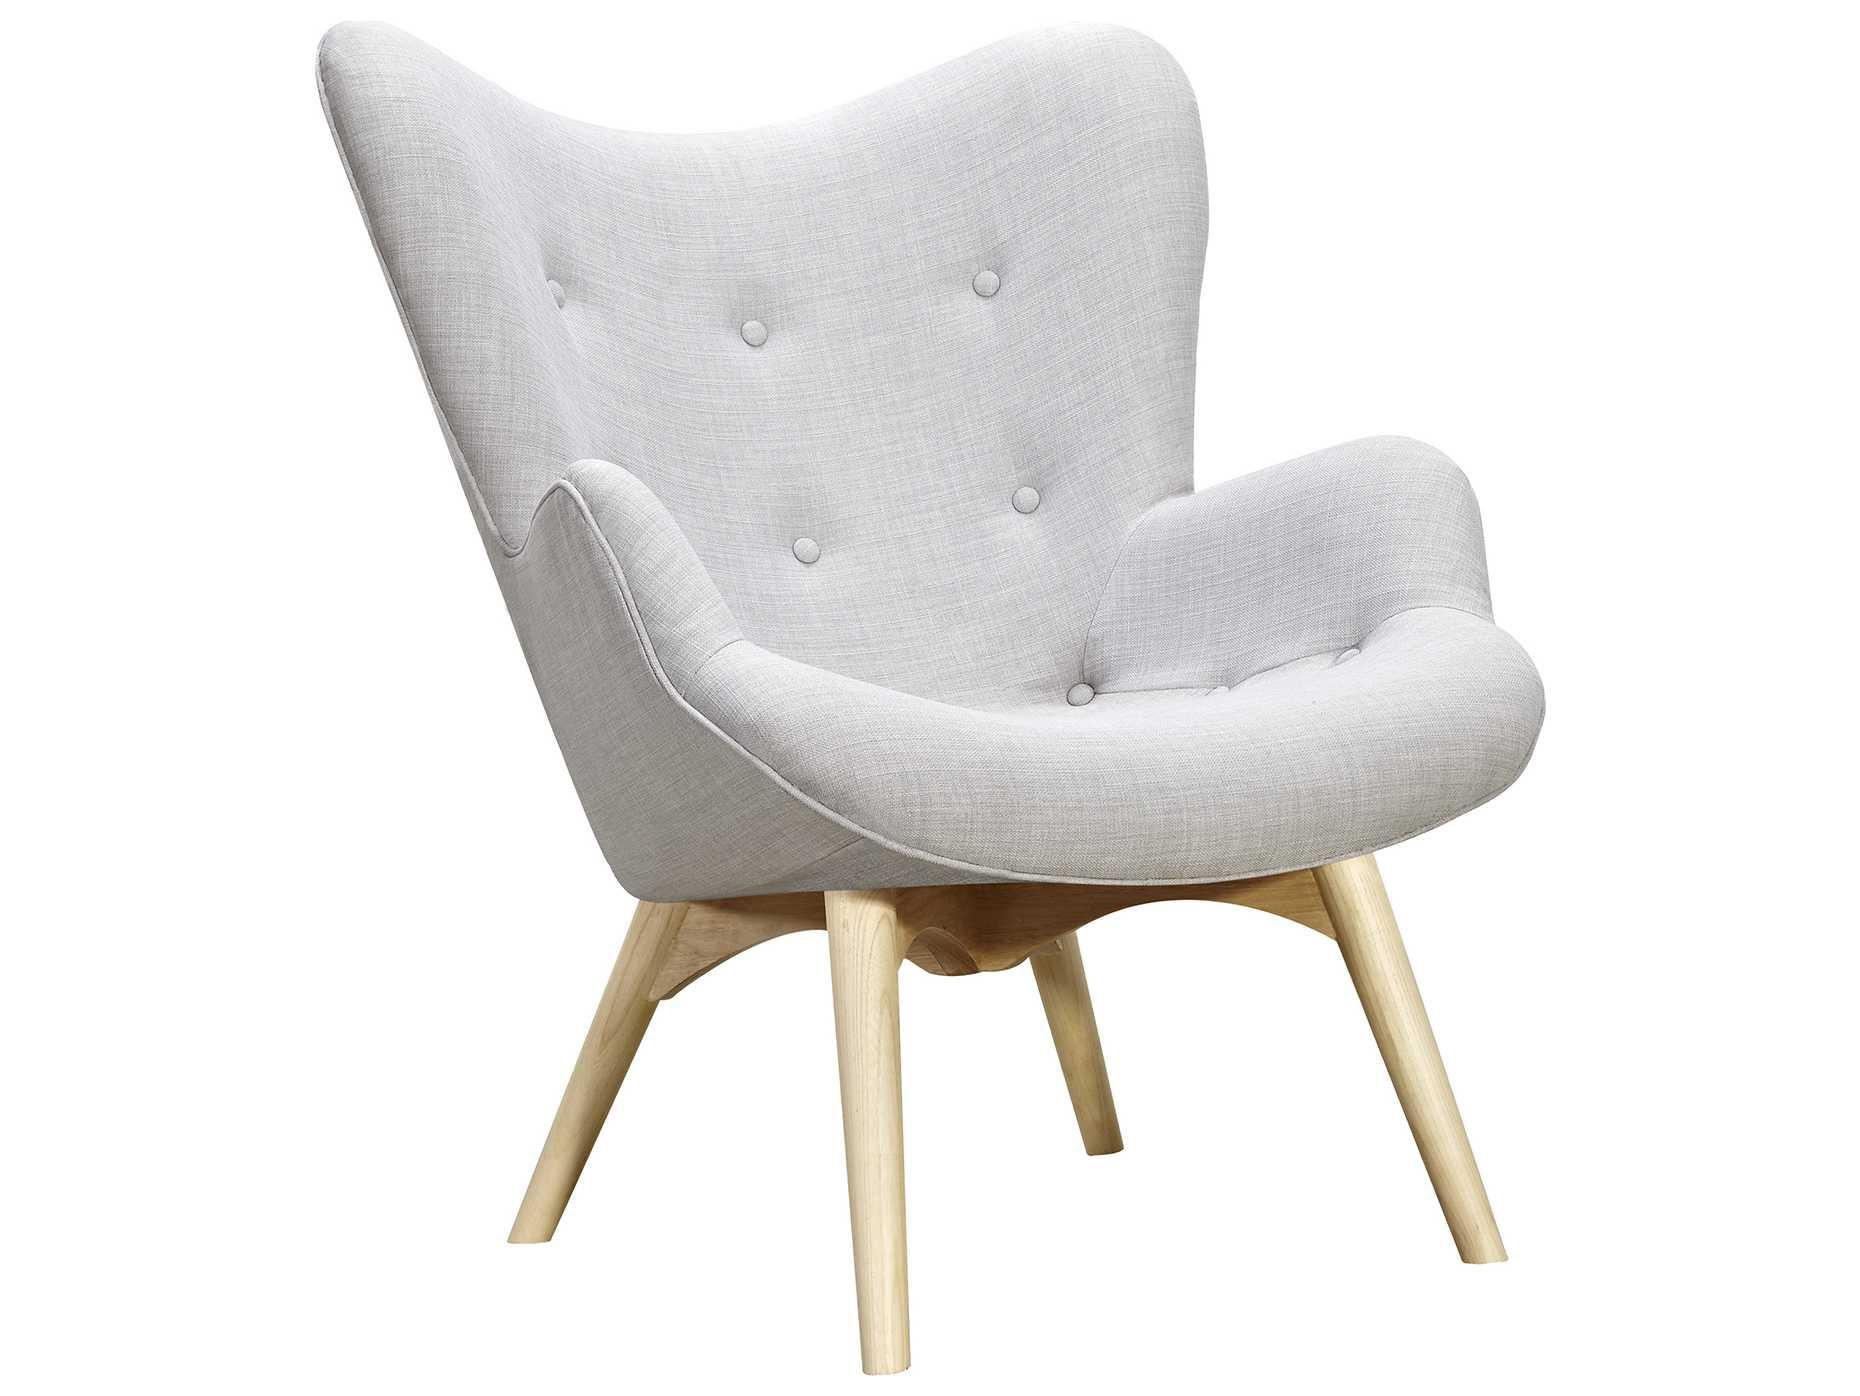 Nyekoncept Aiden Glacier White Accent Chair & Ottoman With Natural Inside Aidan Ii Swivel Accent Chairs (View 19 of 20)